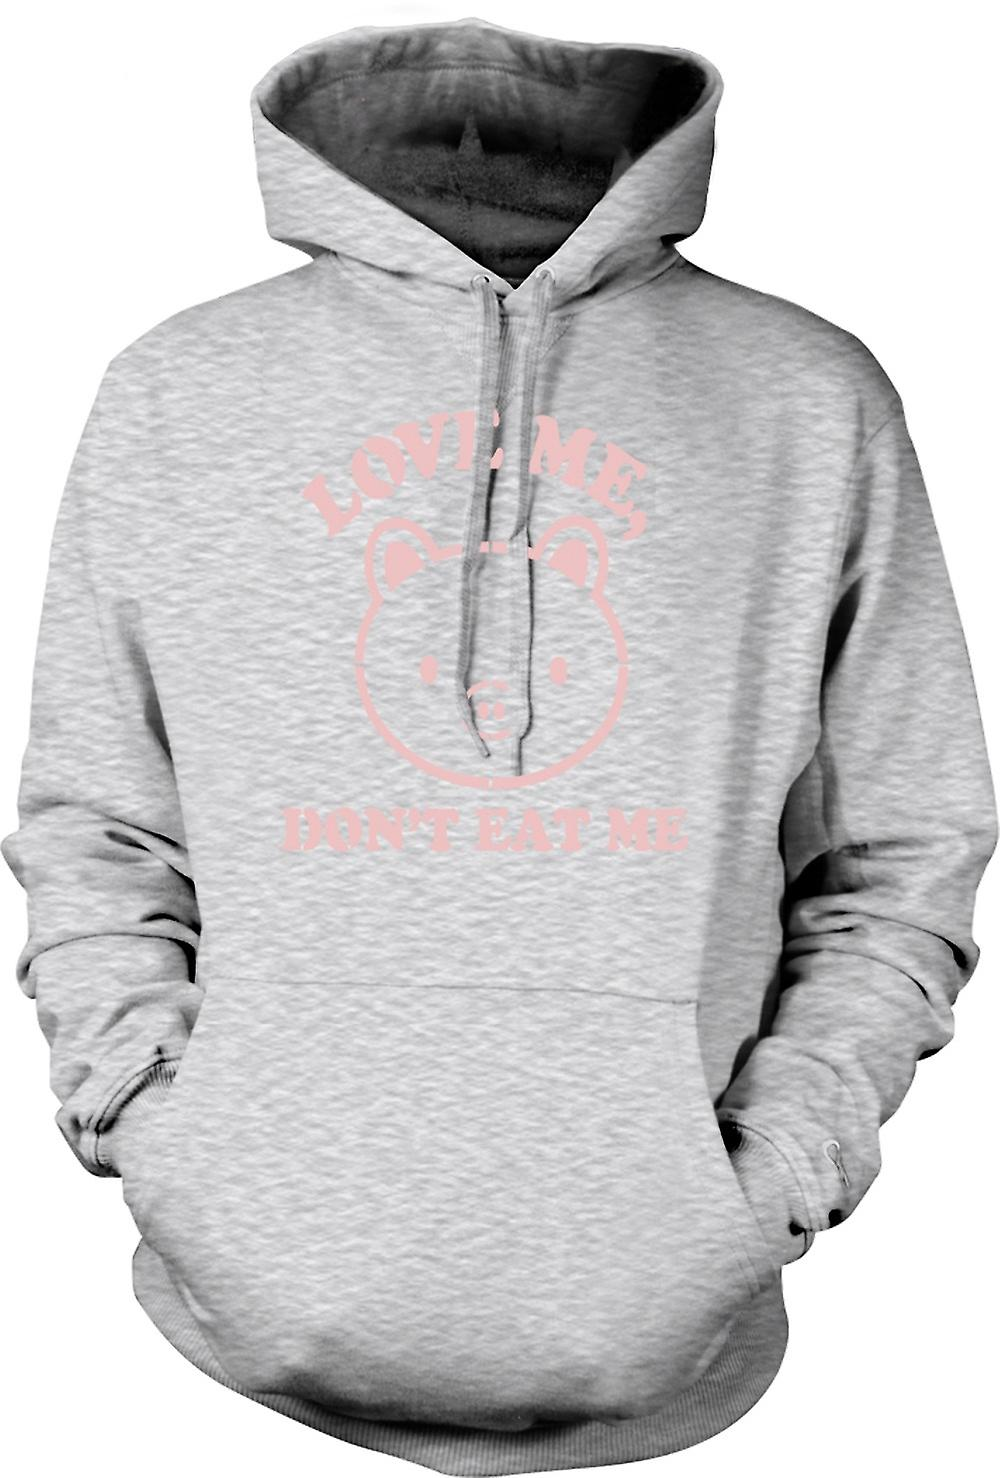 Mens Hoodie - Love Me, Don�t Eat Me - Funny